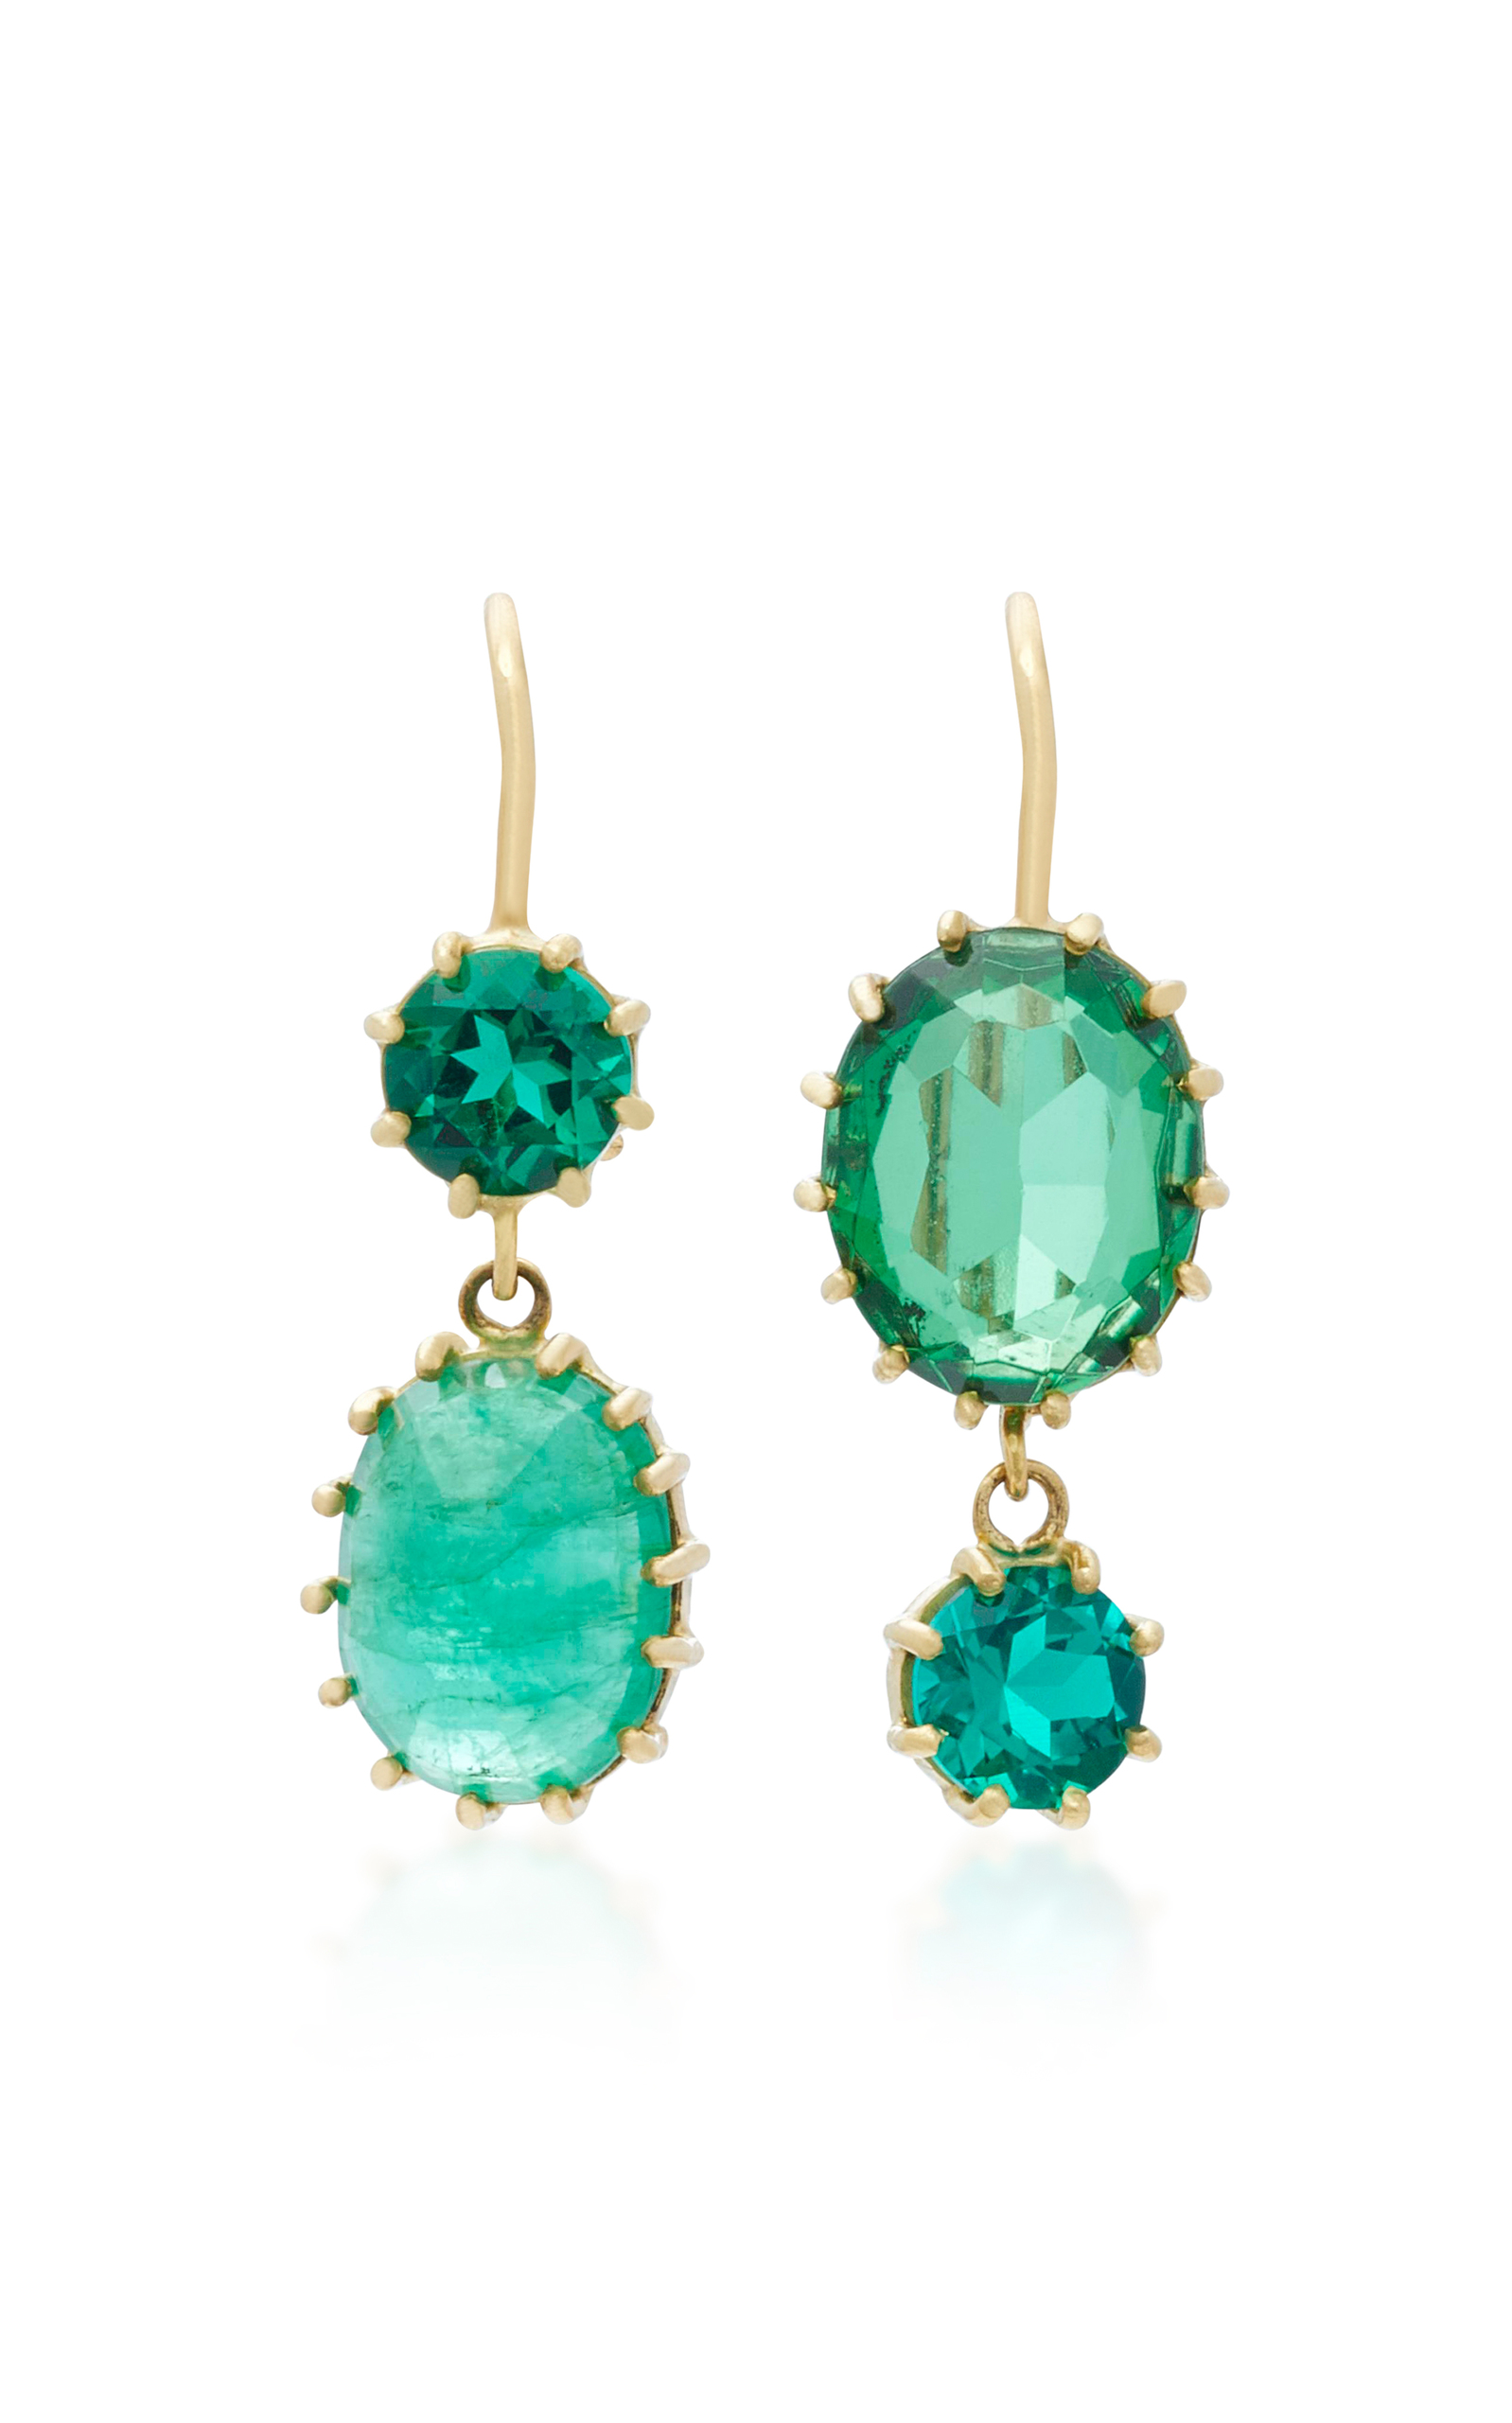 e halo ellipse london by ebneh earrings designer stone jewellery fine emerald uk drop la